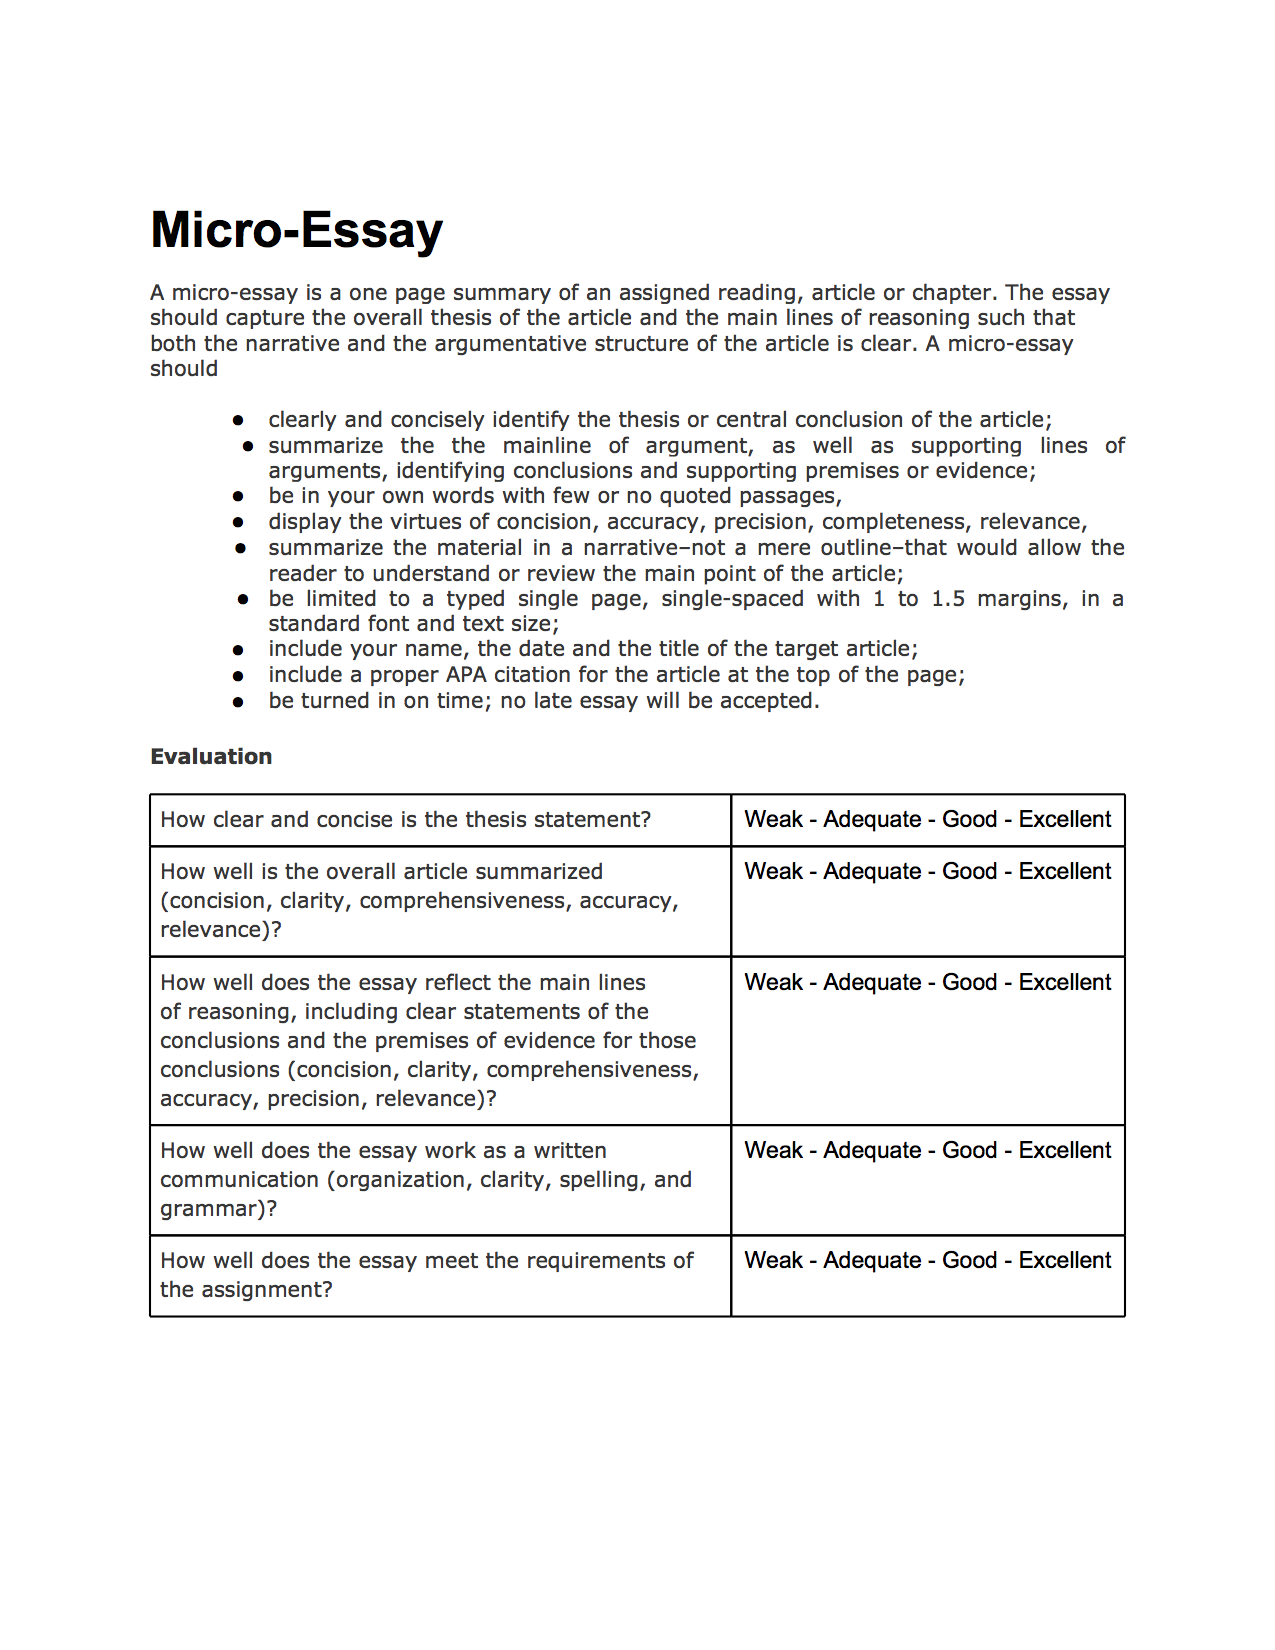 Asian American Essay Microessays She Walks In Beauty Essay also My Favorite Sports Essay Microessays Darwin And Philosophy Catchy Title For Essay